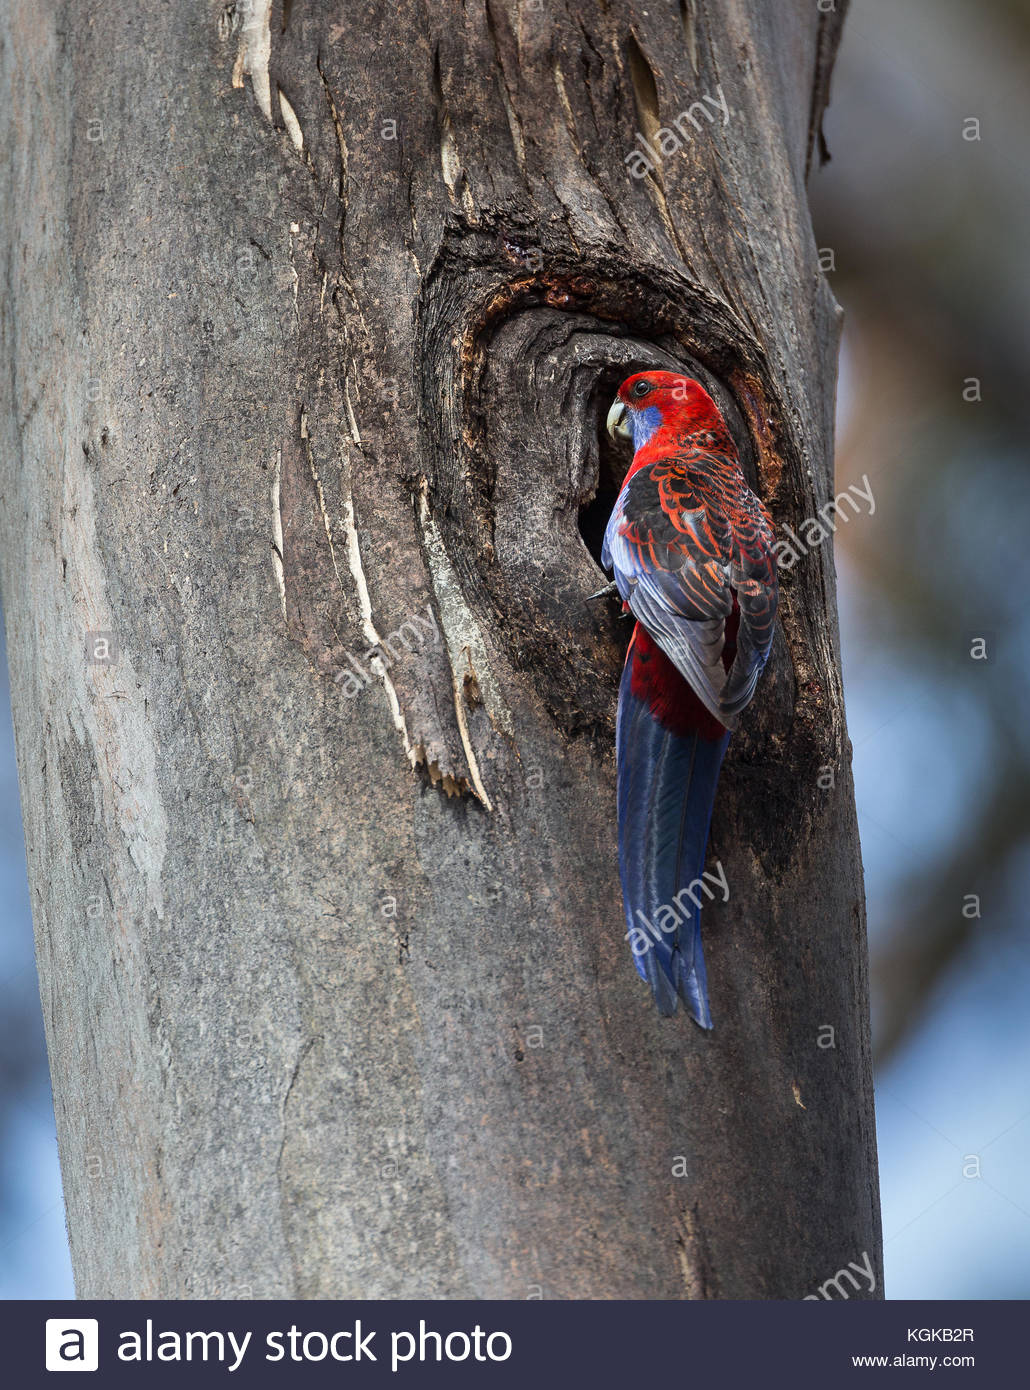 A crimson rosella, Platycercus elegans, at the entrance to its nest in a tree trunk. Stock Photo